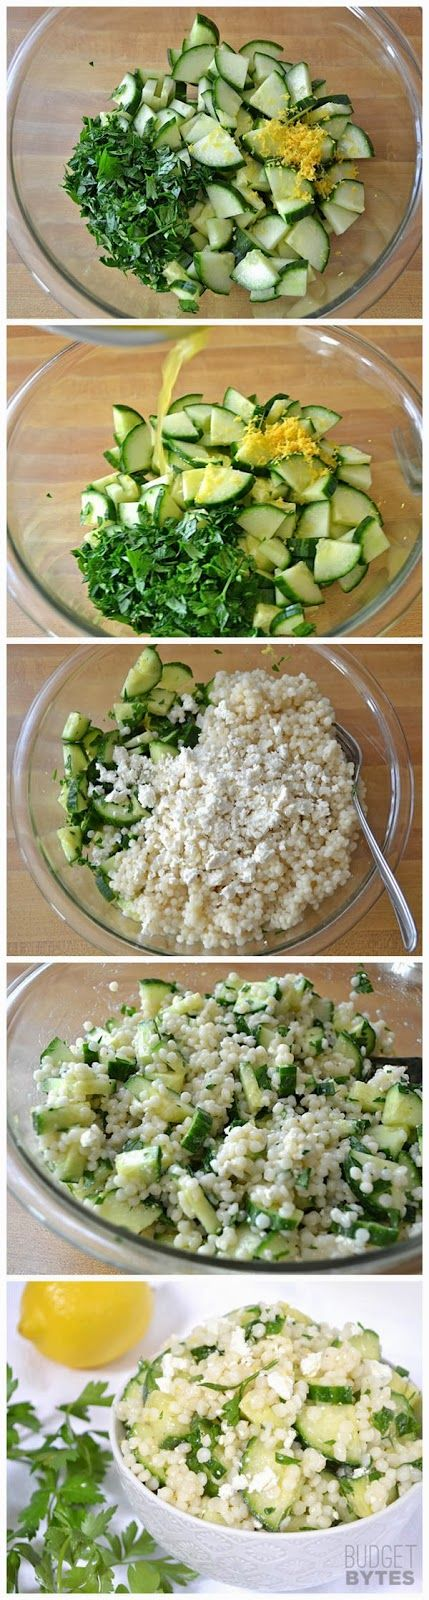 Lemony Cucumber Couscous Salad - Recipe Favorite use quinoa instead of couscous for a gf option.